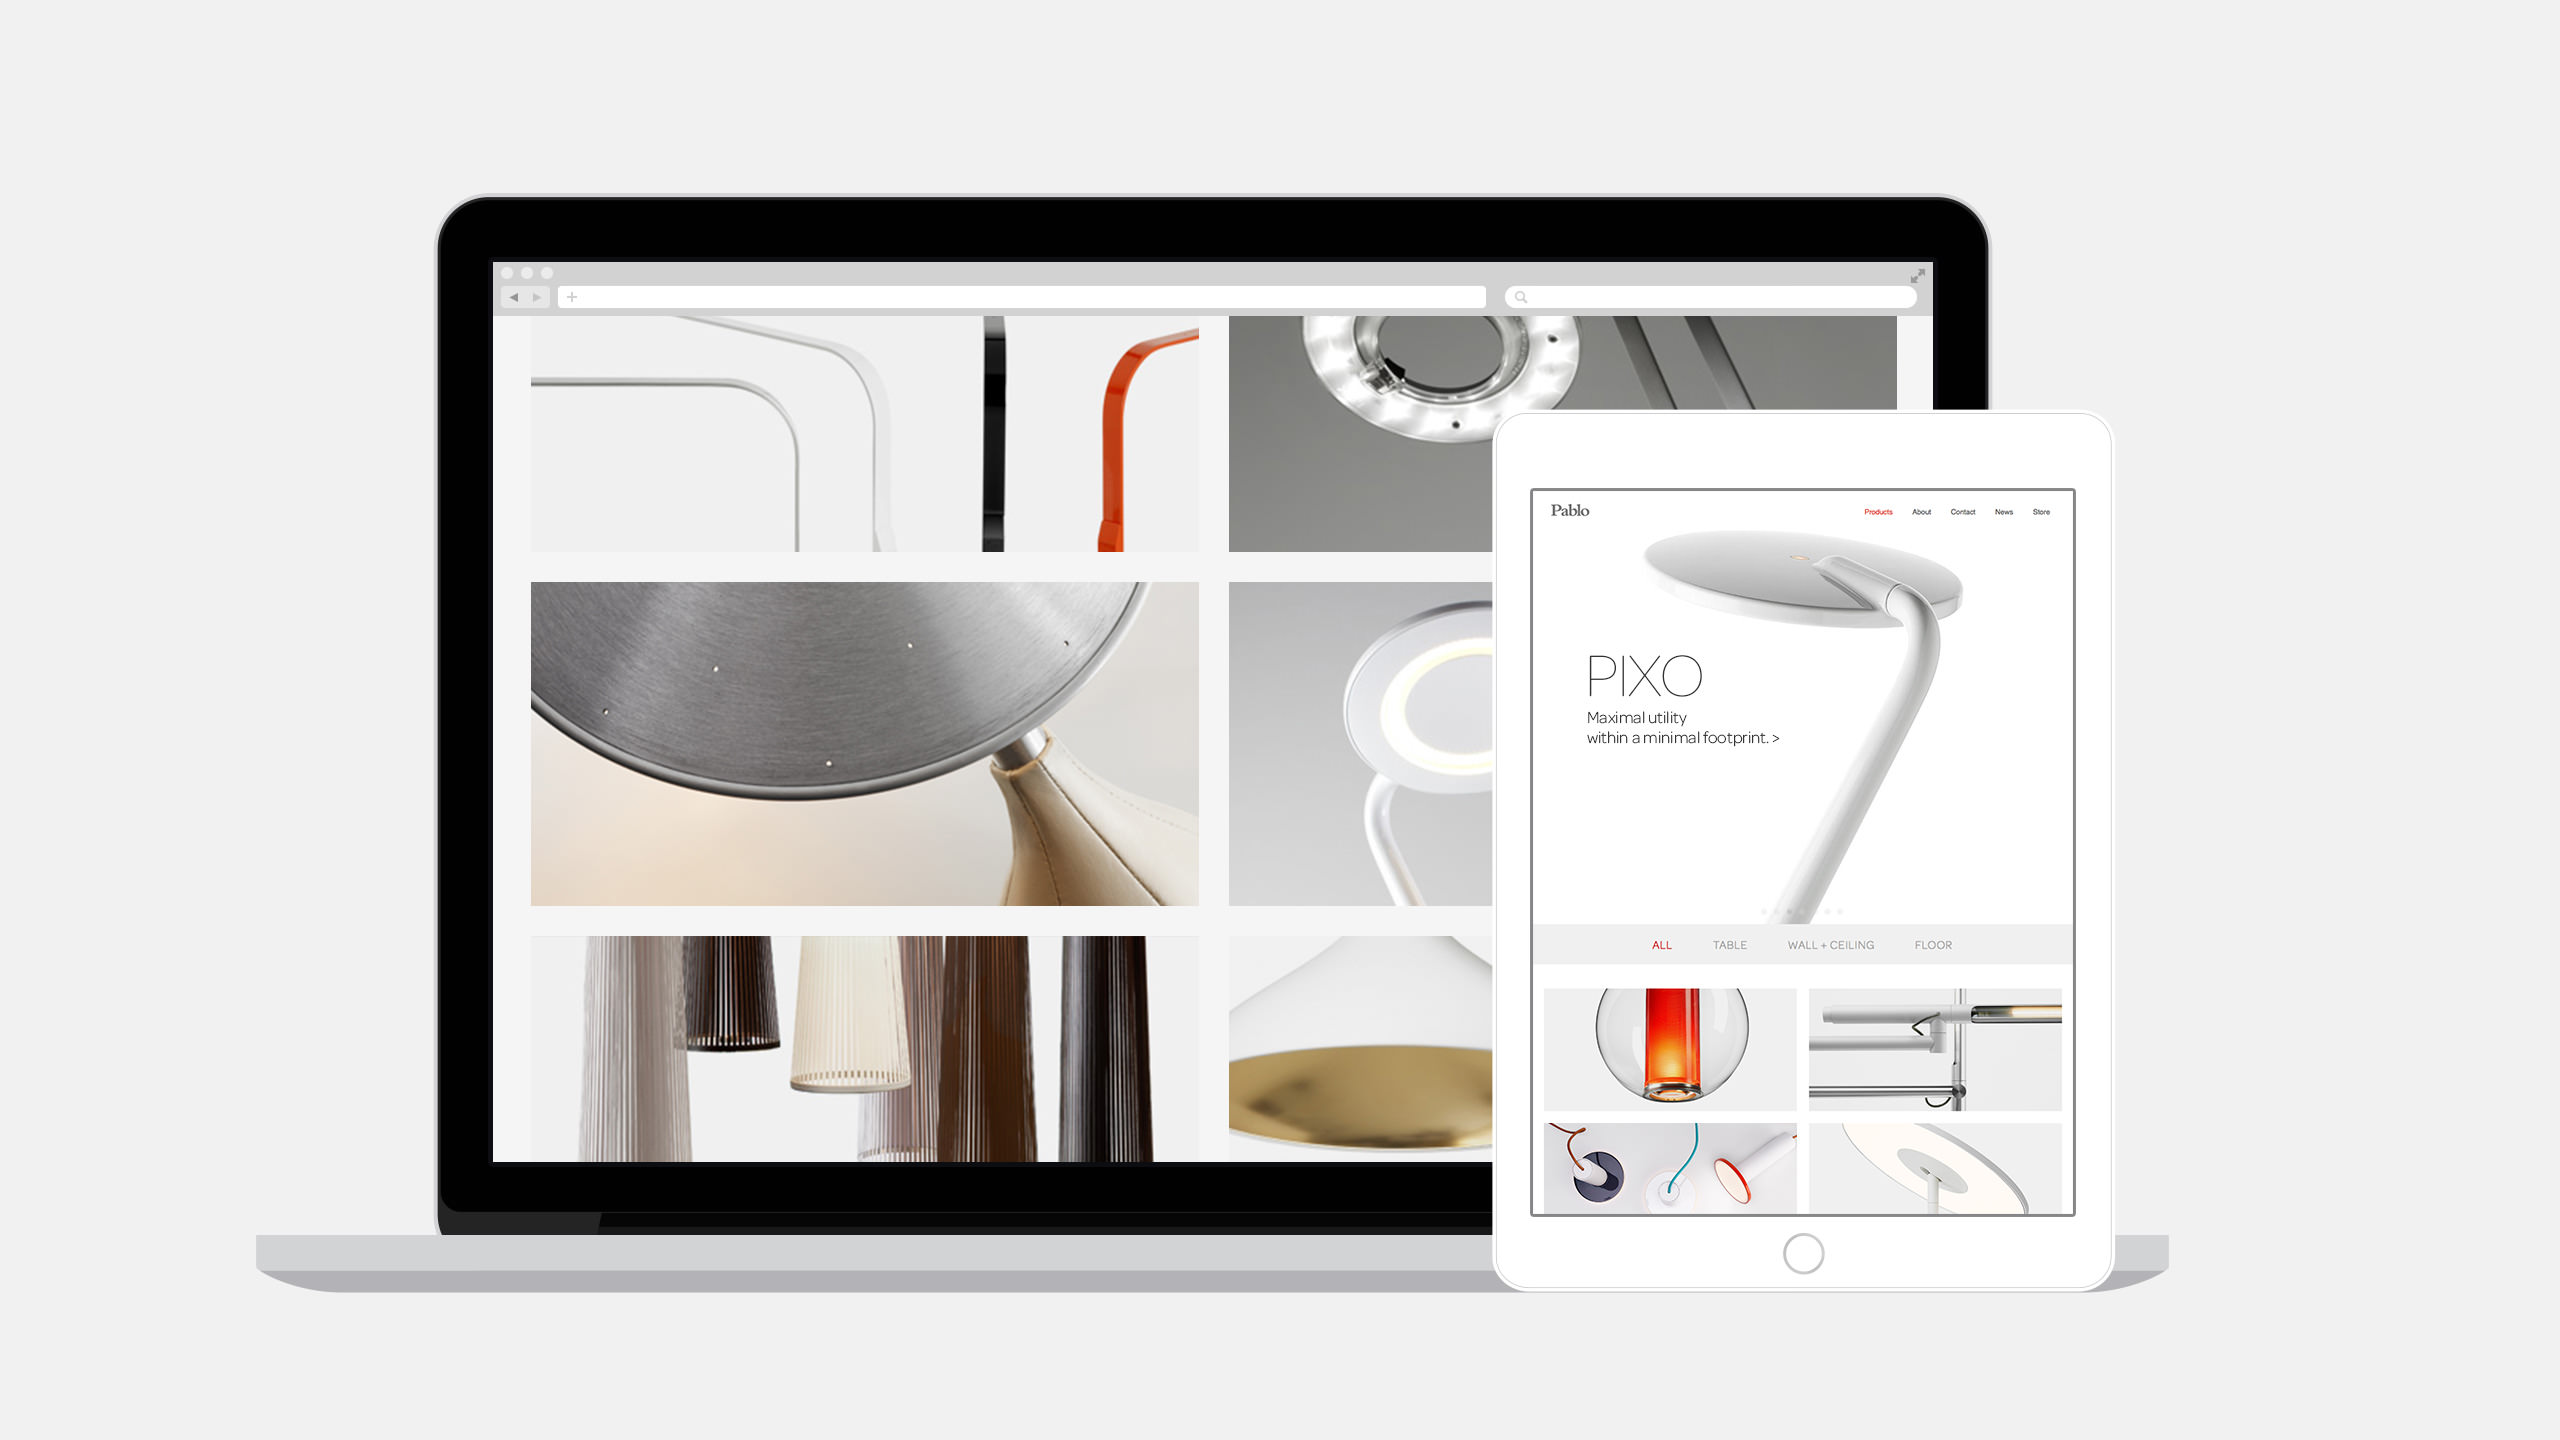 Pablo Designs Website Homepage in device